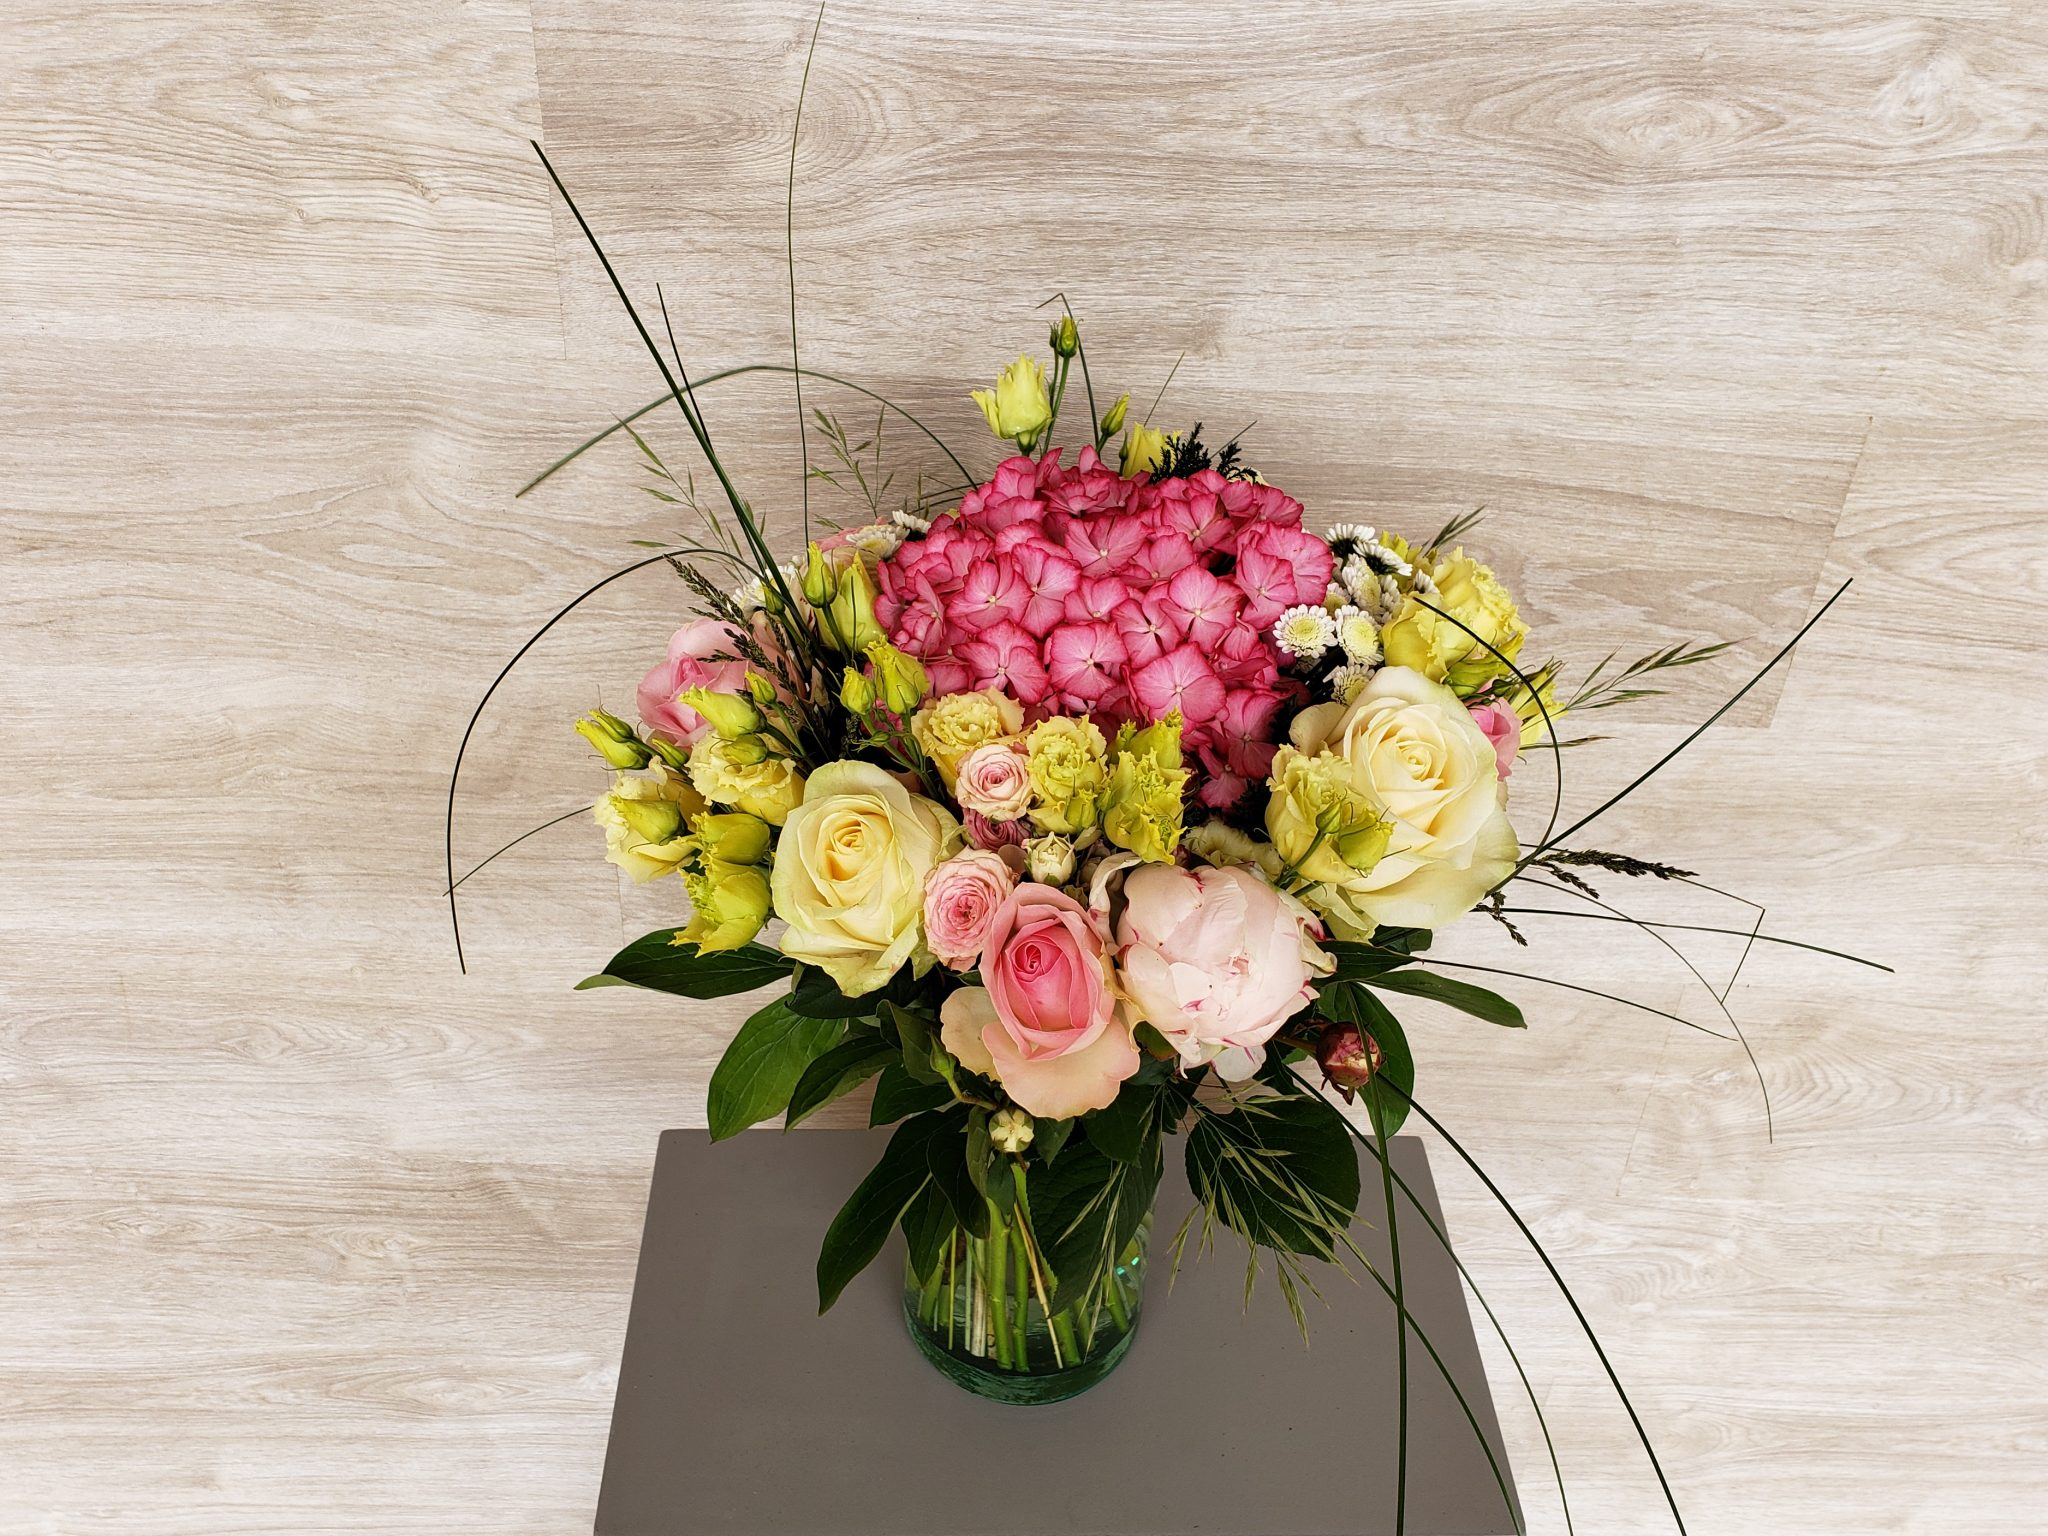 Bouquet de pivoine